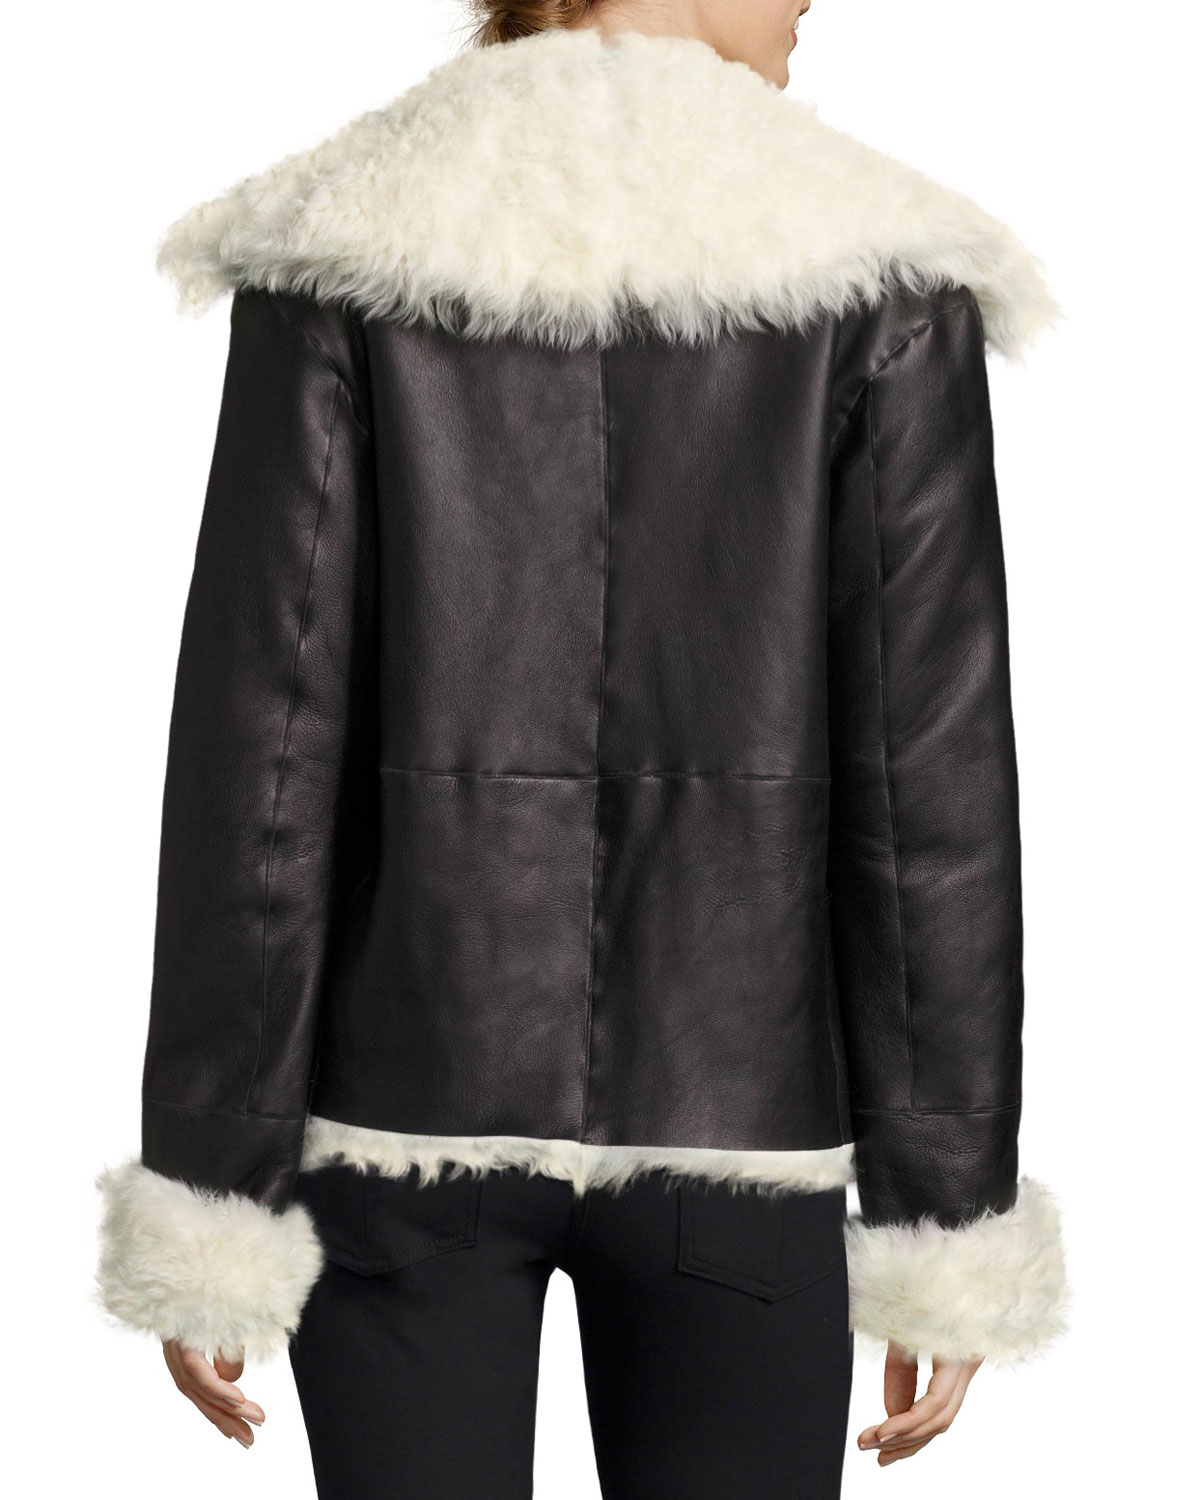 80158e149bf Theory Curly Toscana Shearling Fur Leather Pea Coat, Black | Neiman Marcus